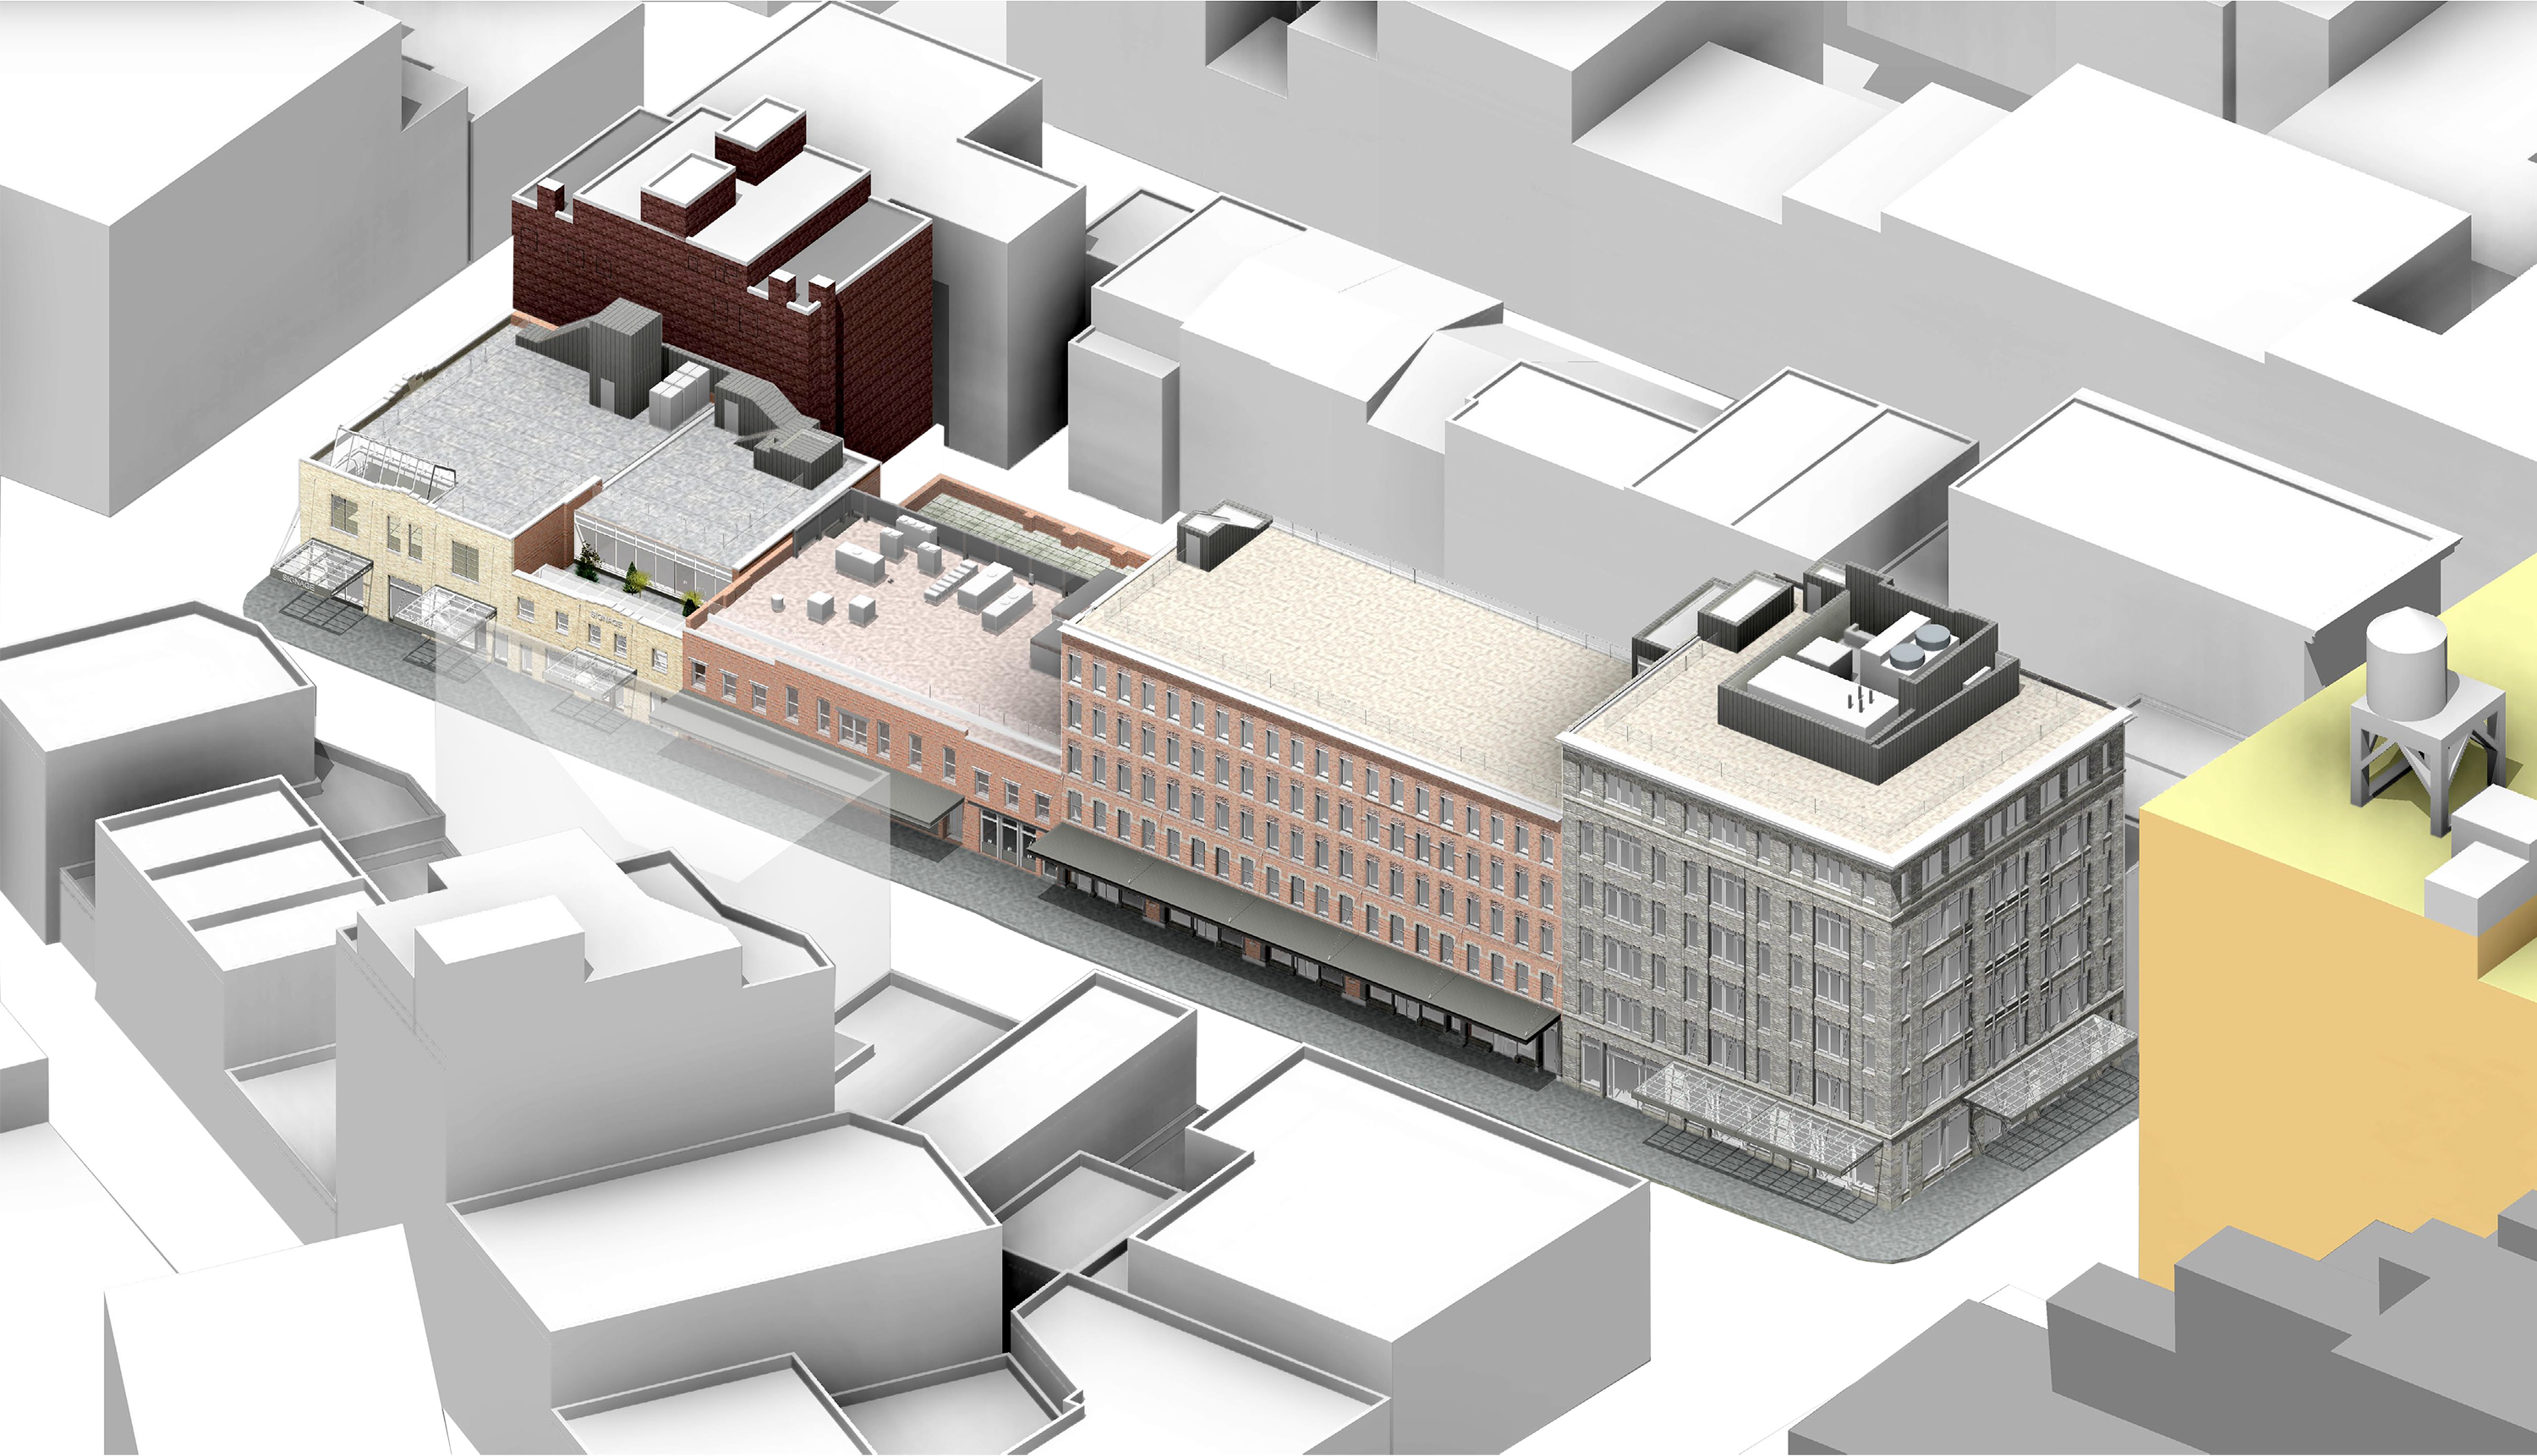 46-74 Gansevoort Street, current proposal